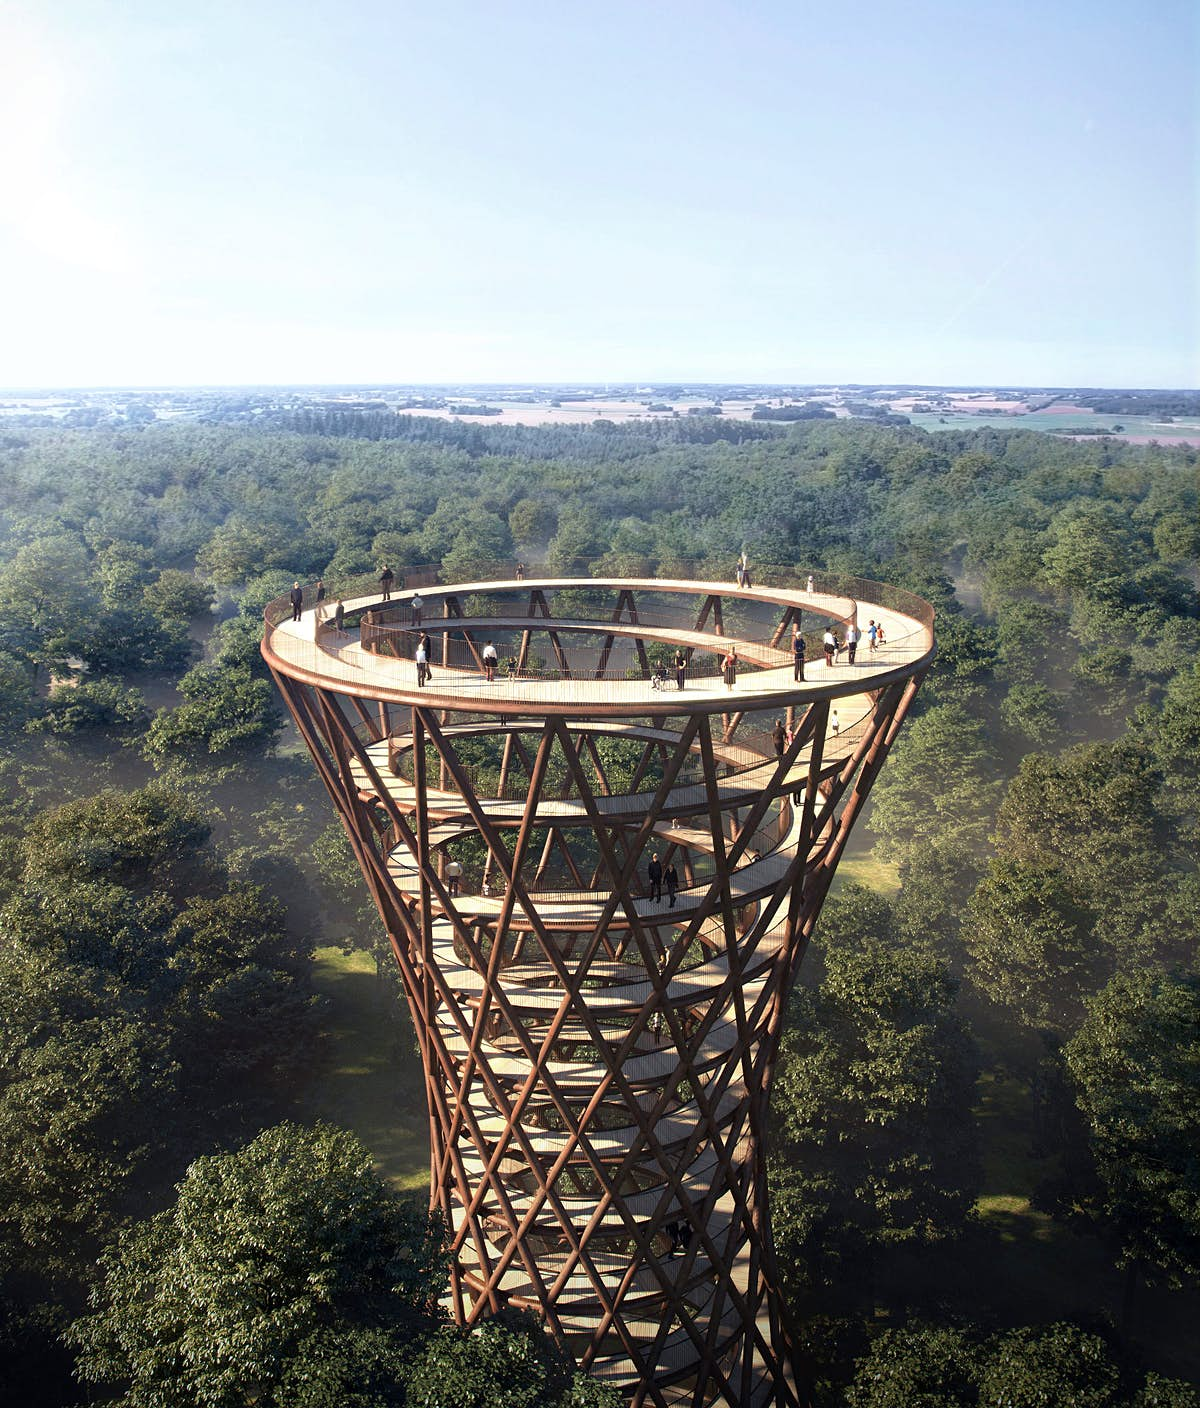 Plans unveiled for an incredible spiral treetop walkway in Denmark